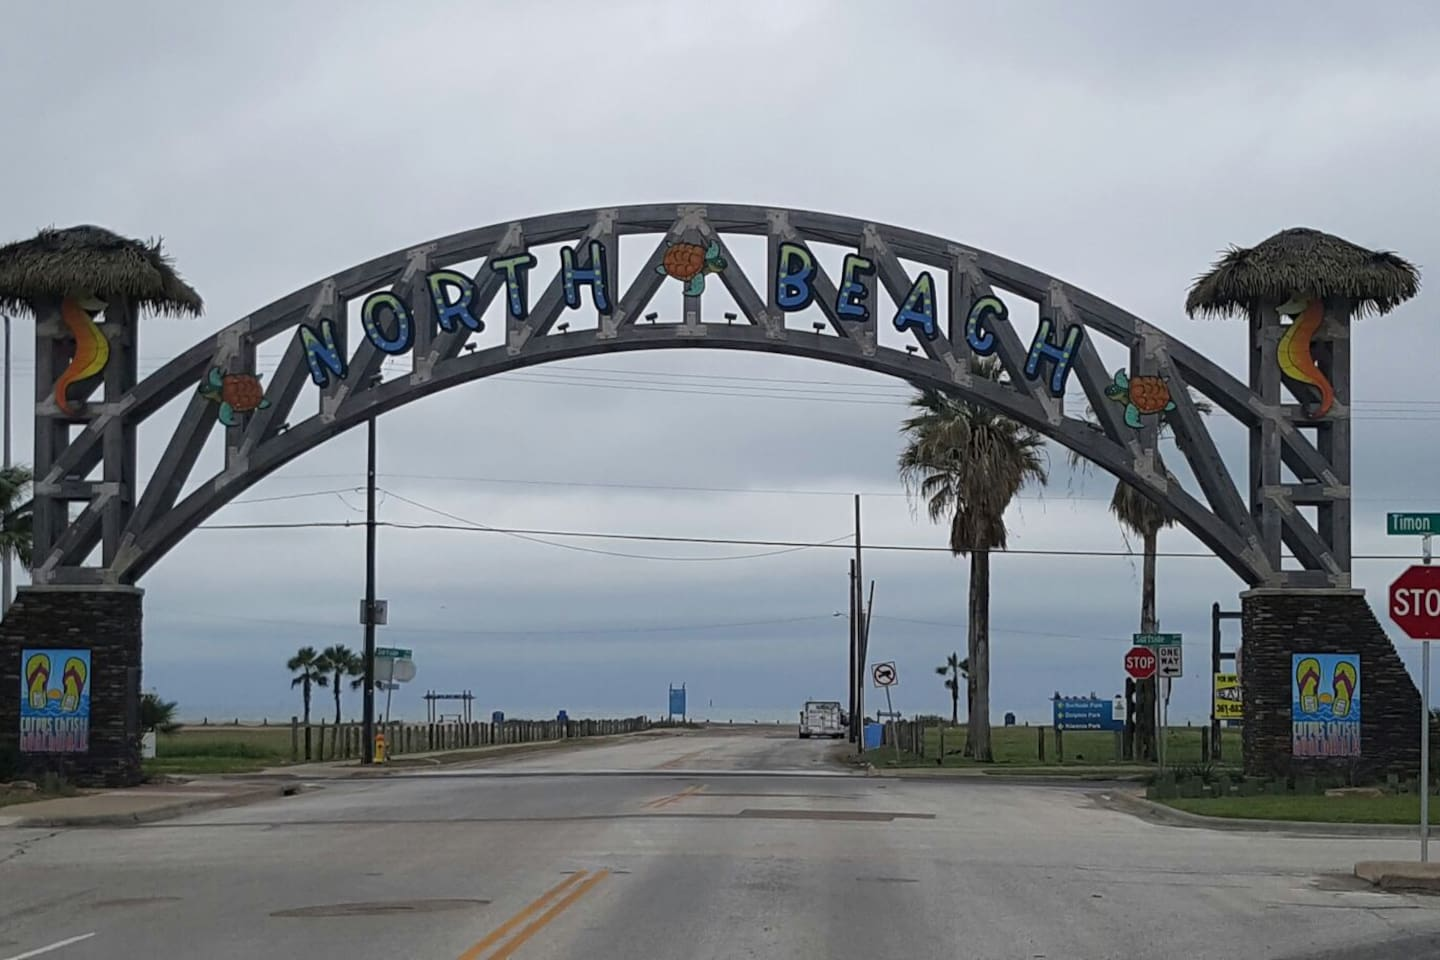 Welcome to North Beach, Corpus Christi, TX ...city by the sea!